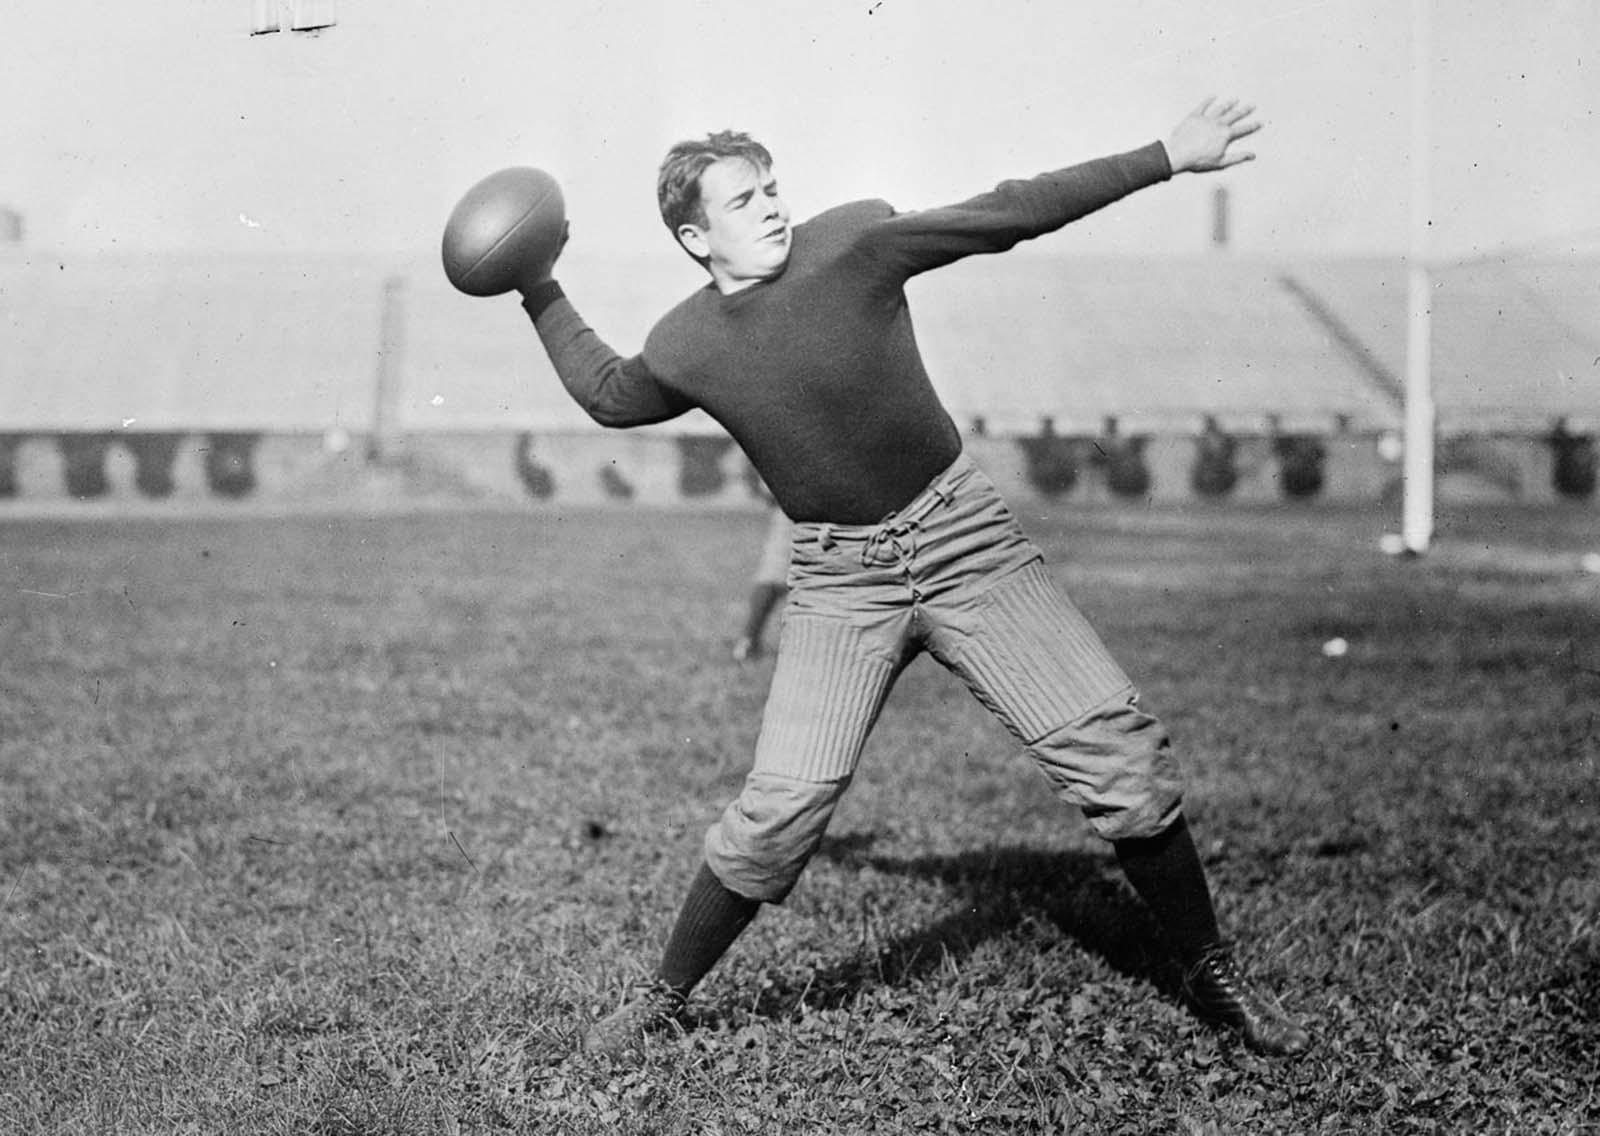 A player for Pennsylvania University. 1910.